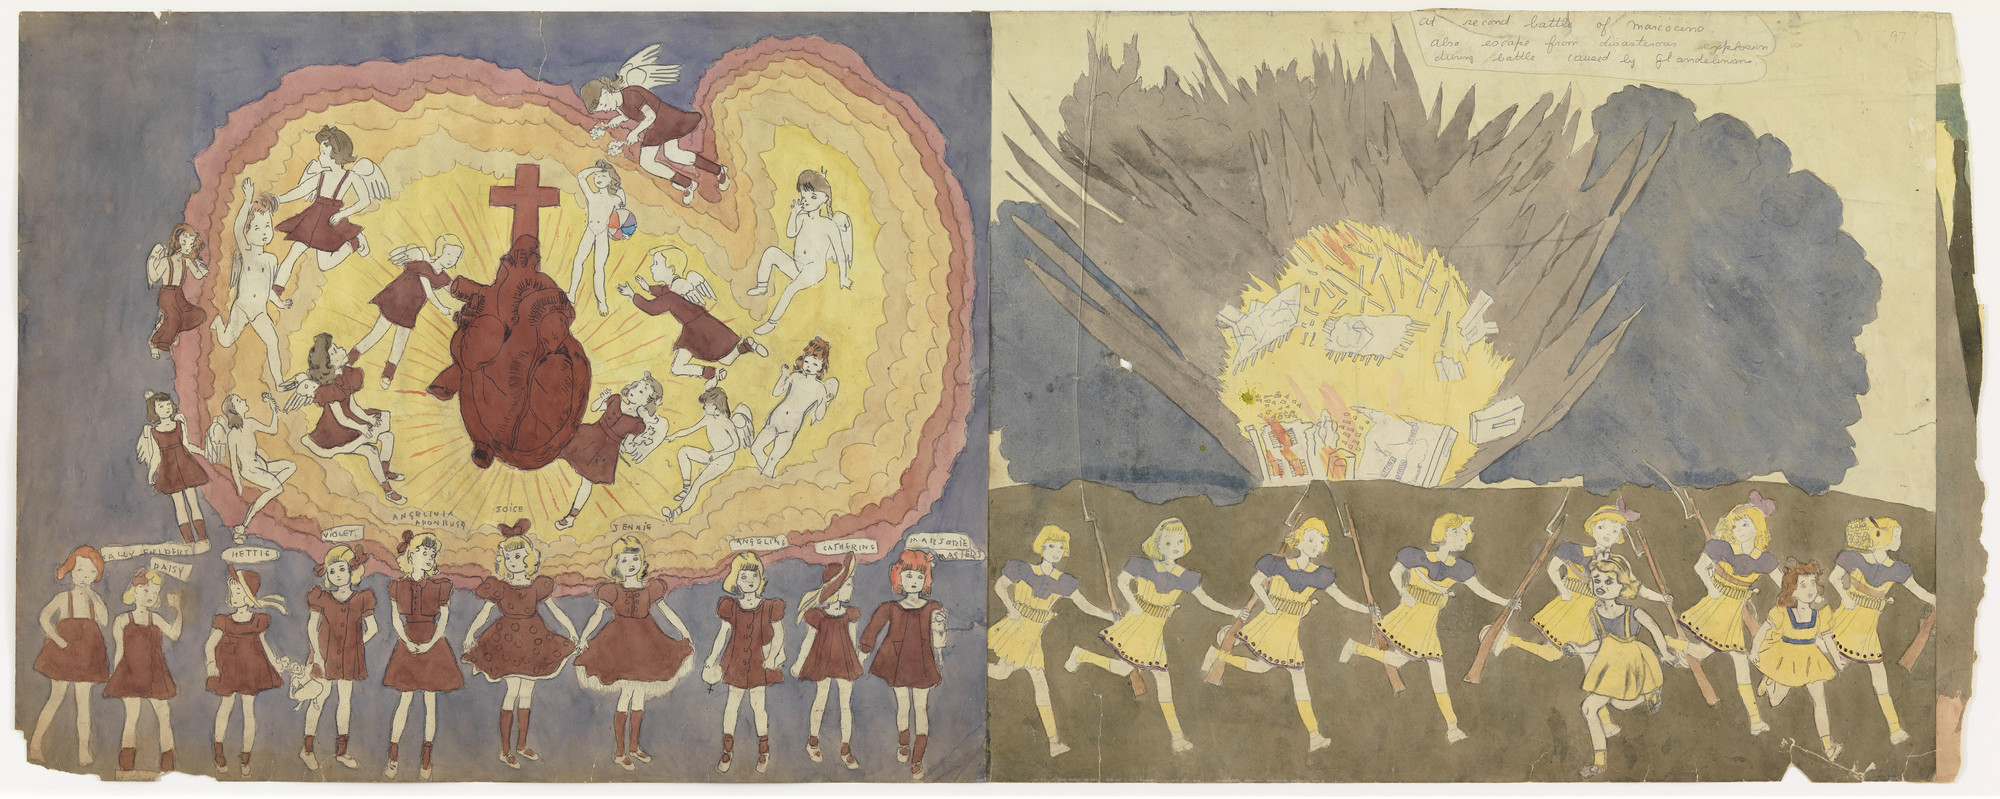 Henry Darger A The Vivian S D Like Child Slaves B Unled Sacred Heart And At Second Battle Of Marcocino Also Escape From Disasterous